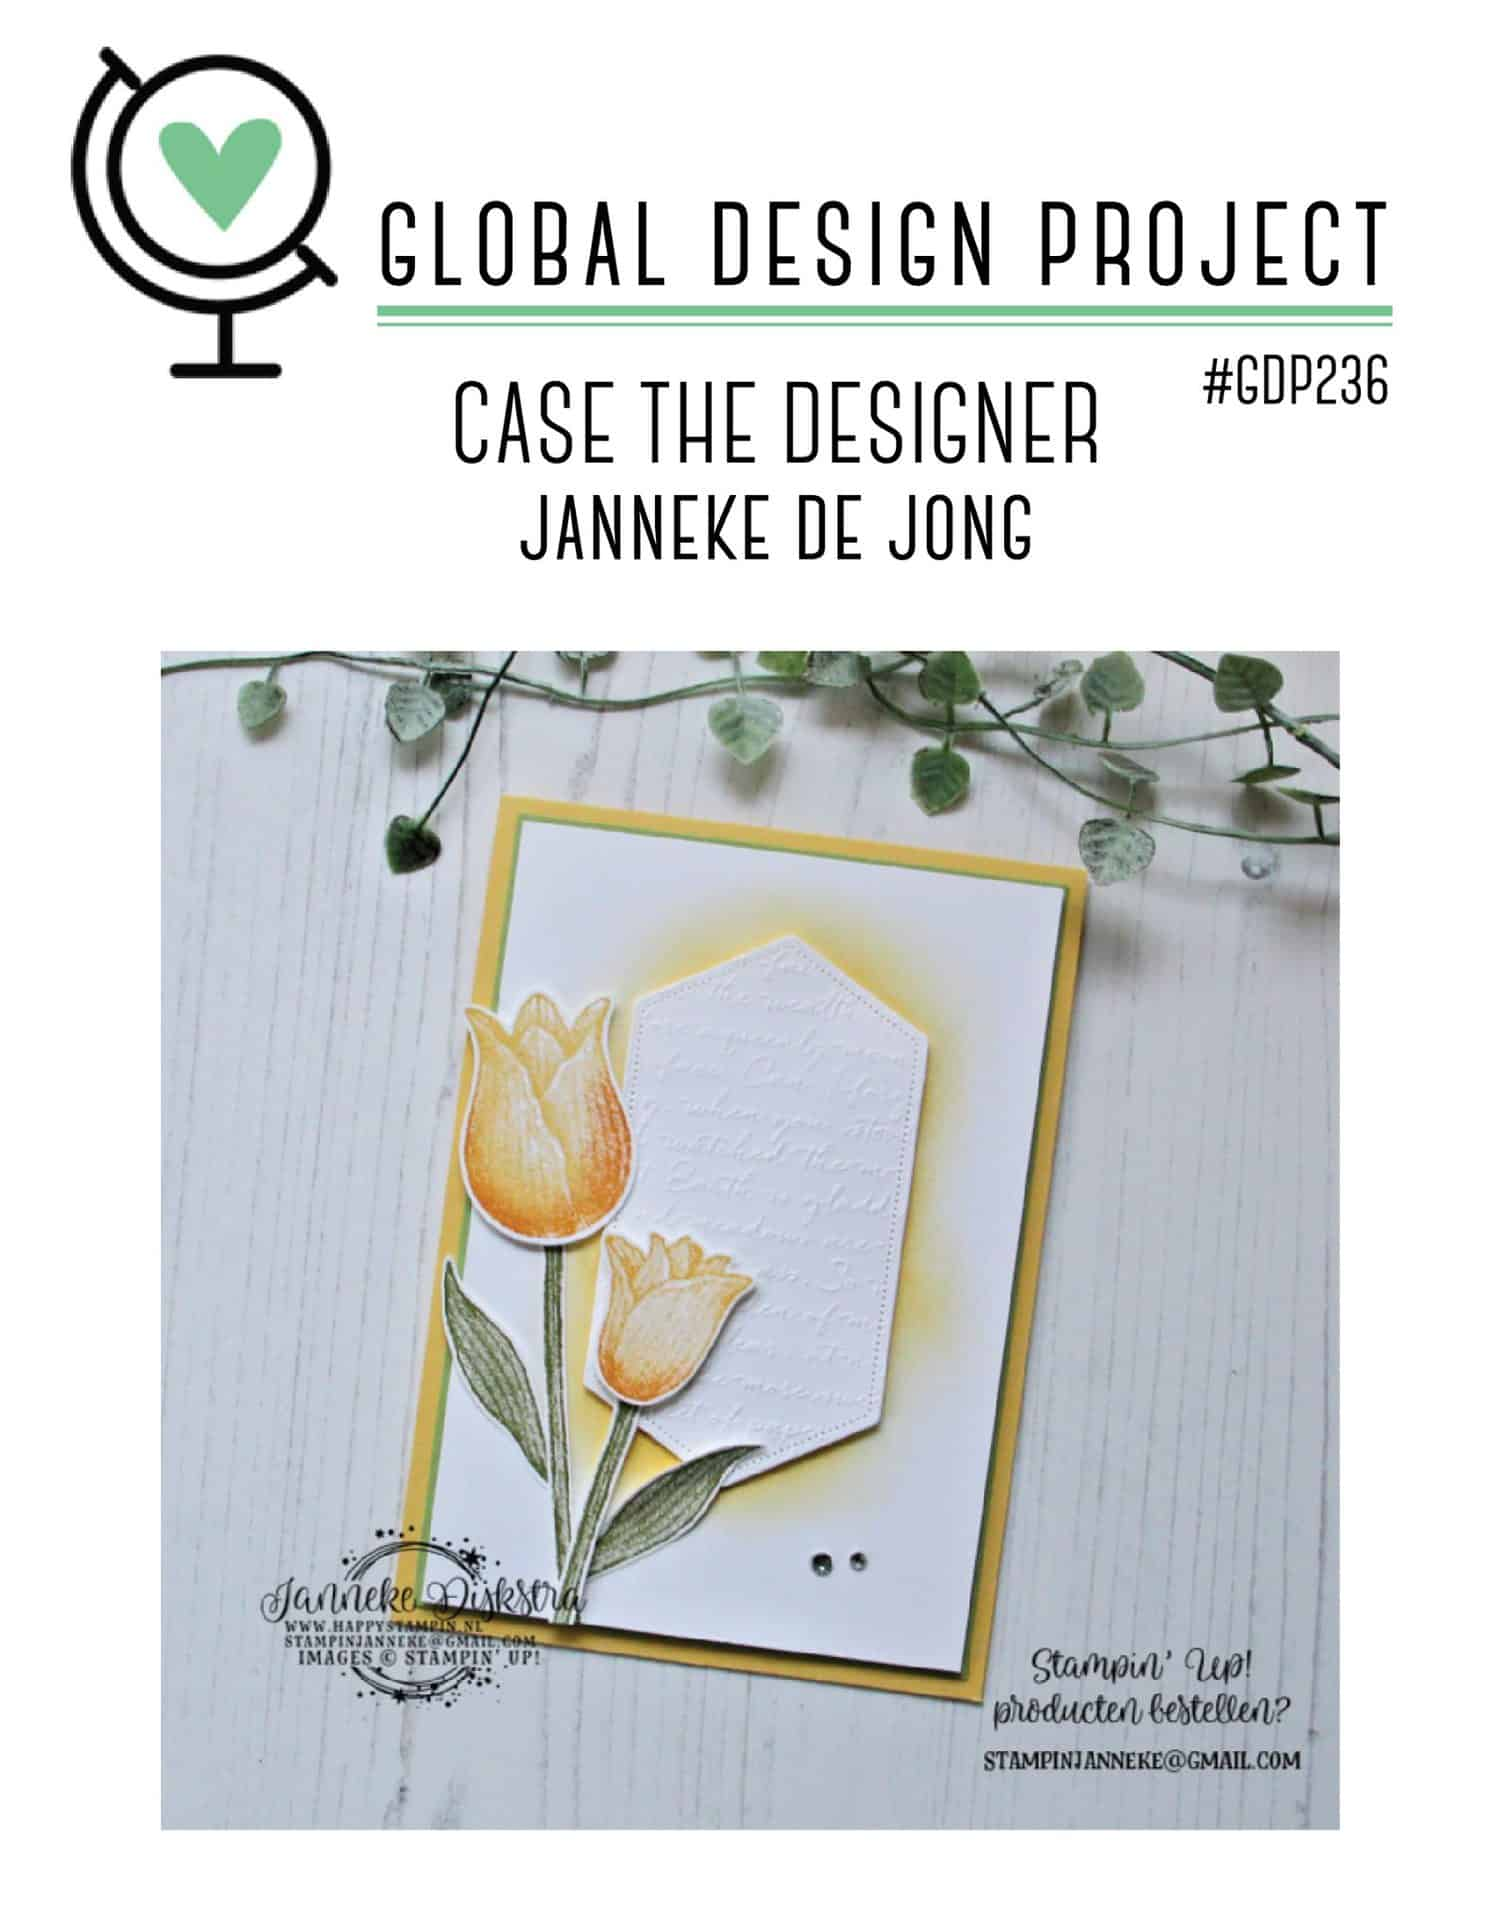 Global Design Project gdp236 Janneke de Jong